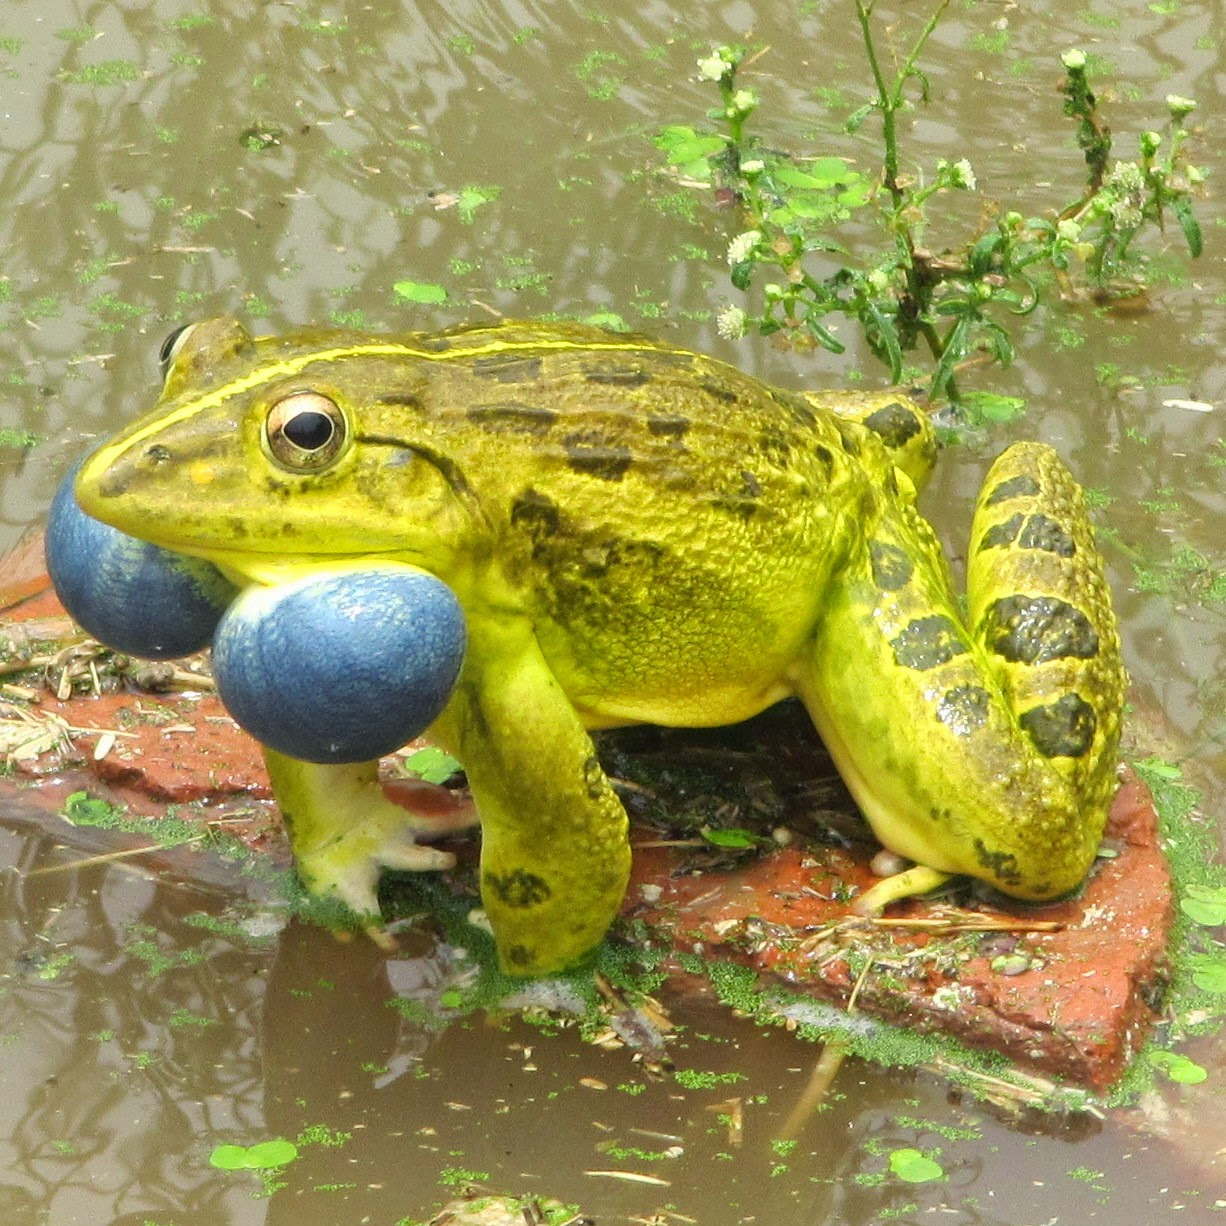 Frogs are seen in abundance during raining season